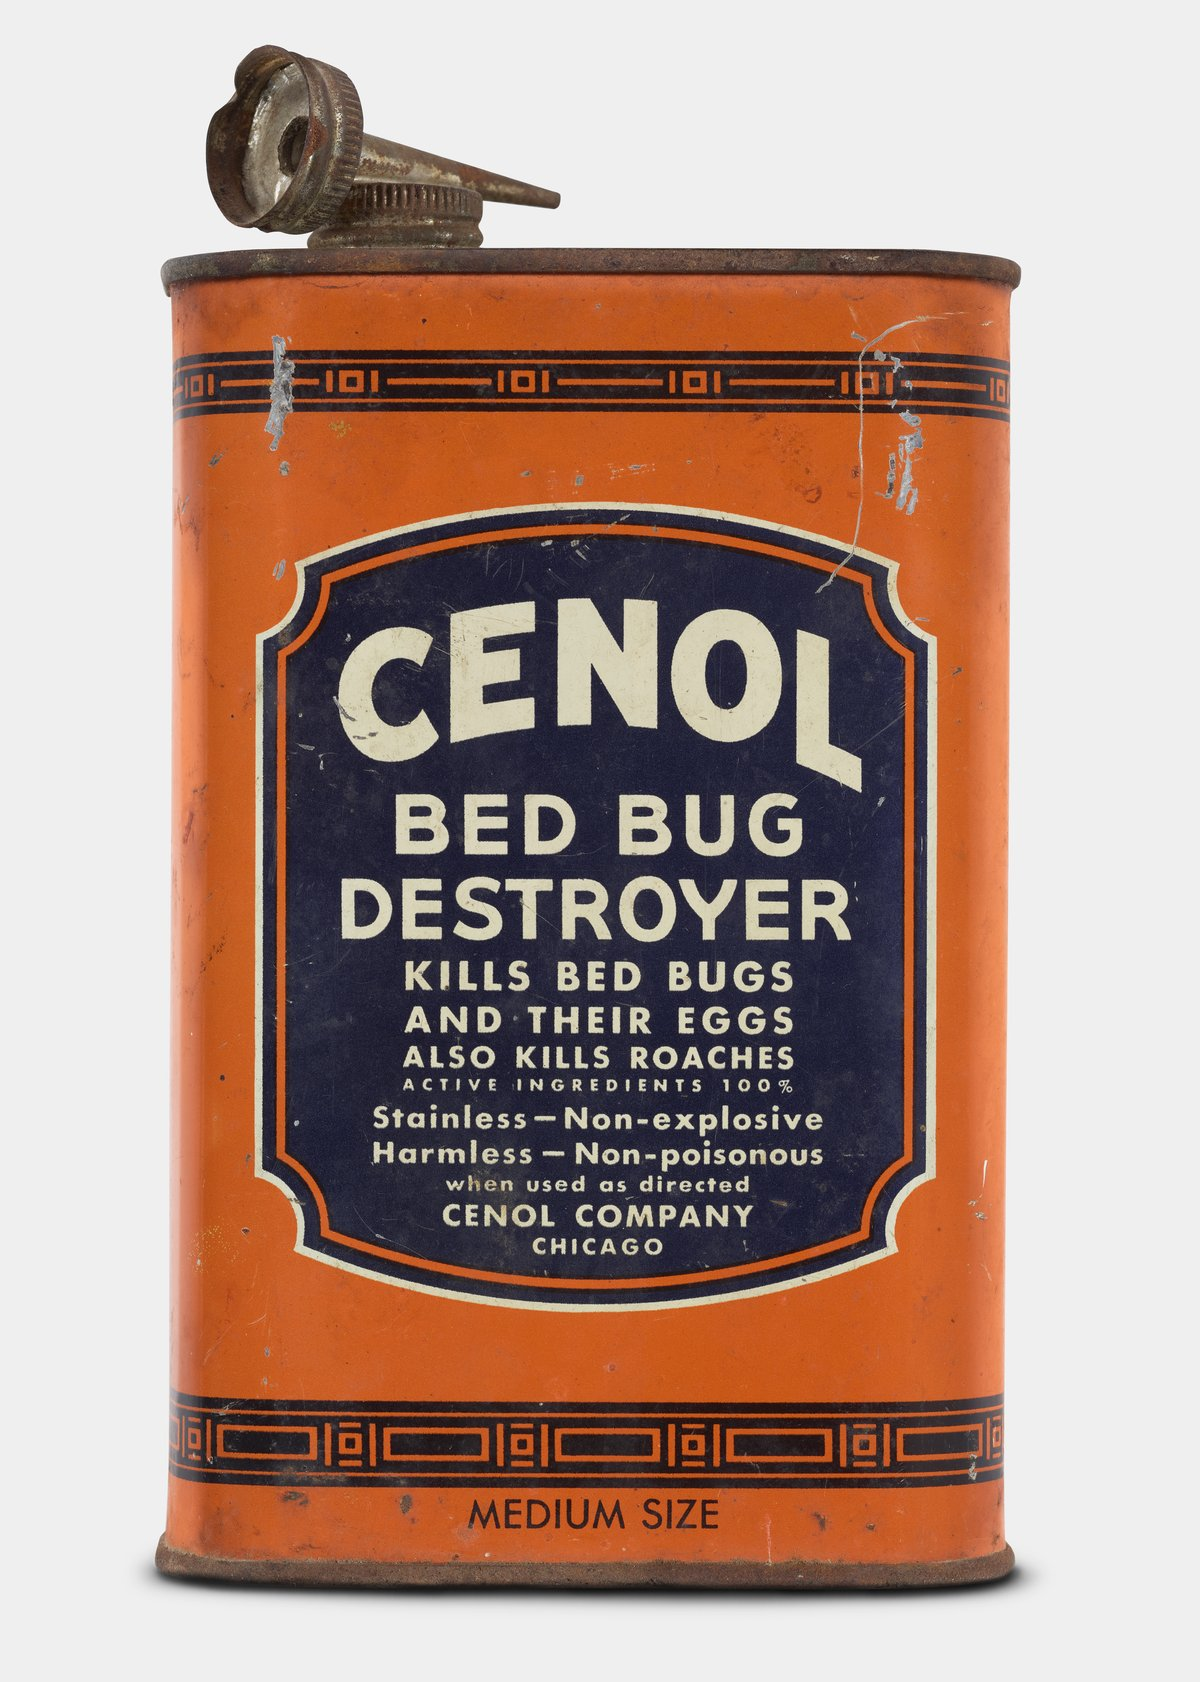 Cenol Bed Bug Destroyer Science History Institute Digital Collections